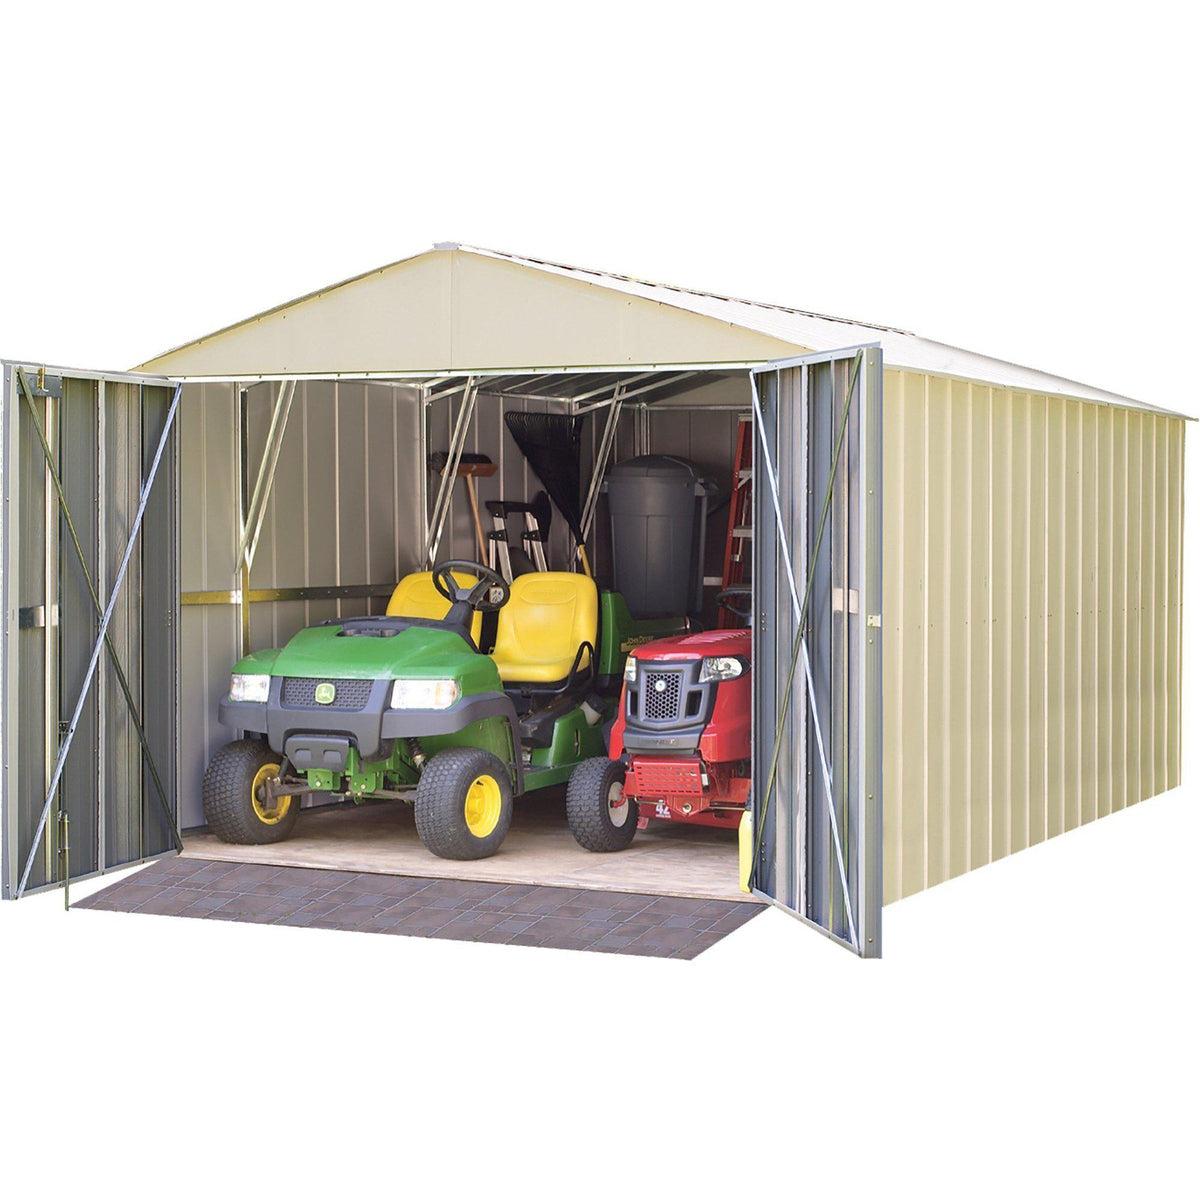 Arrow Commander Mountaineer High Gable Steel Storage Building, Eggshell, 10 x 15 ft.